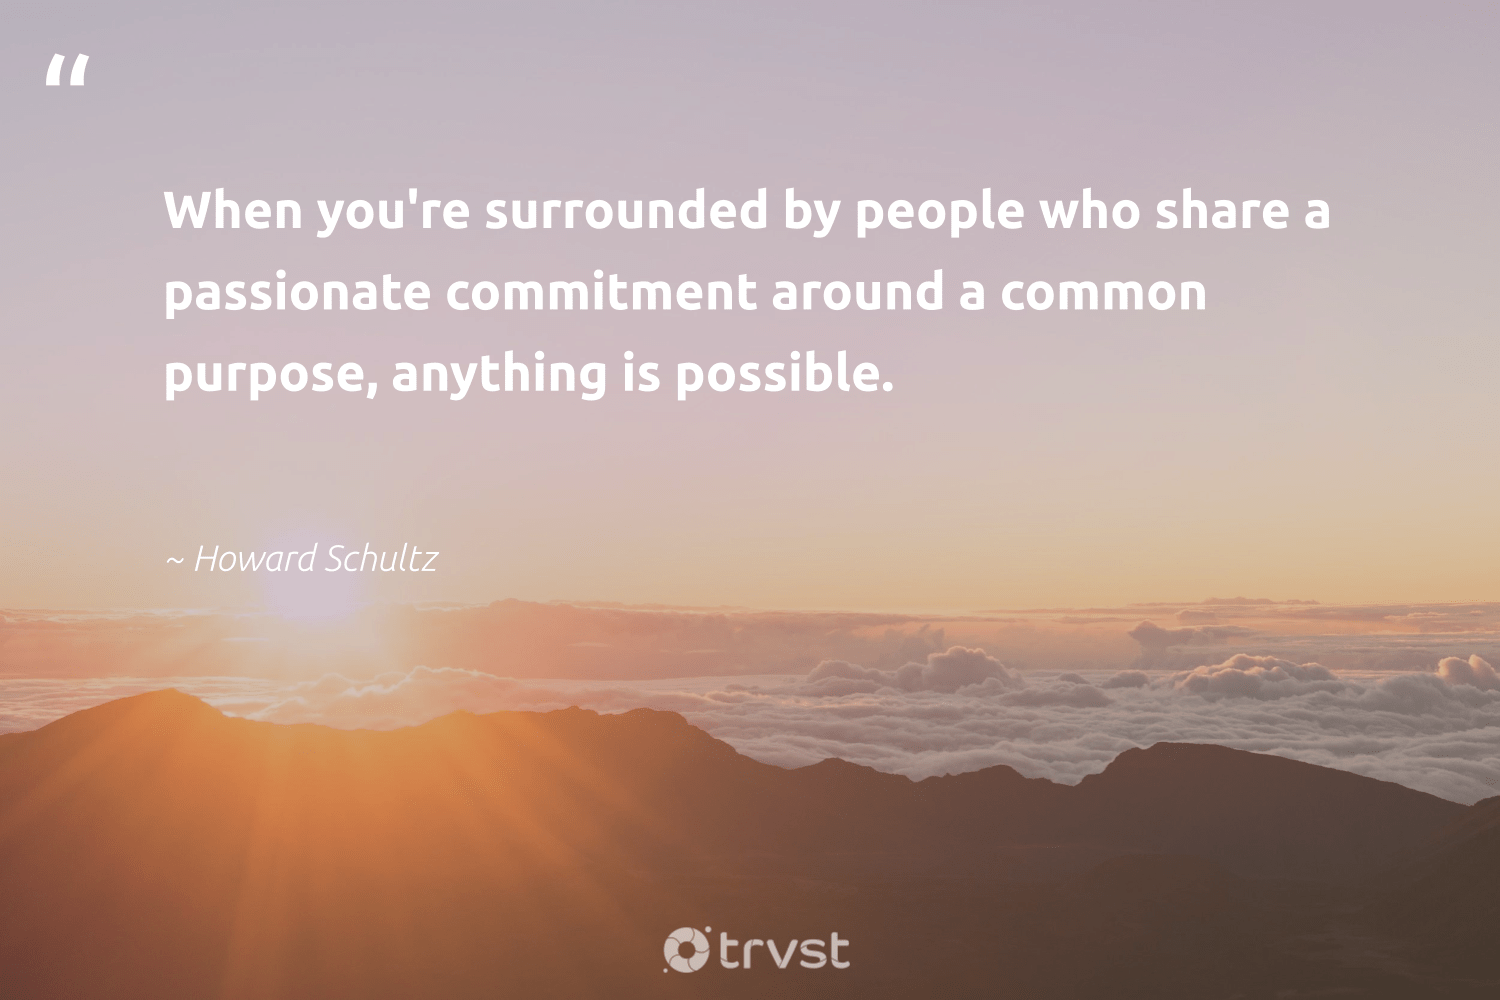 """""""When you're surrounded by people who share a passionate commitment around a common purpose, anything is possible.""""  - Howard Schultz #trvst #quotes #purpose #findingpupose #health #begreat #socialimpact #purposedriven #nevergiveup #mindset #gogreen #findpurpose"""